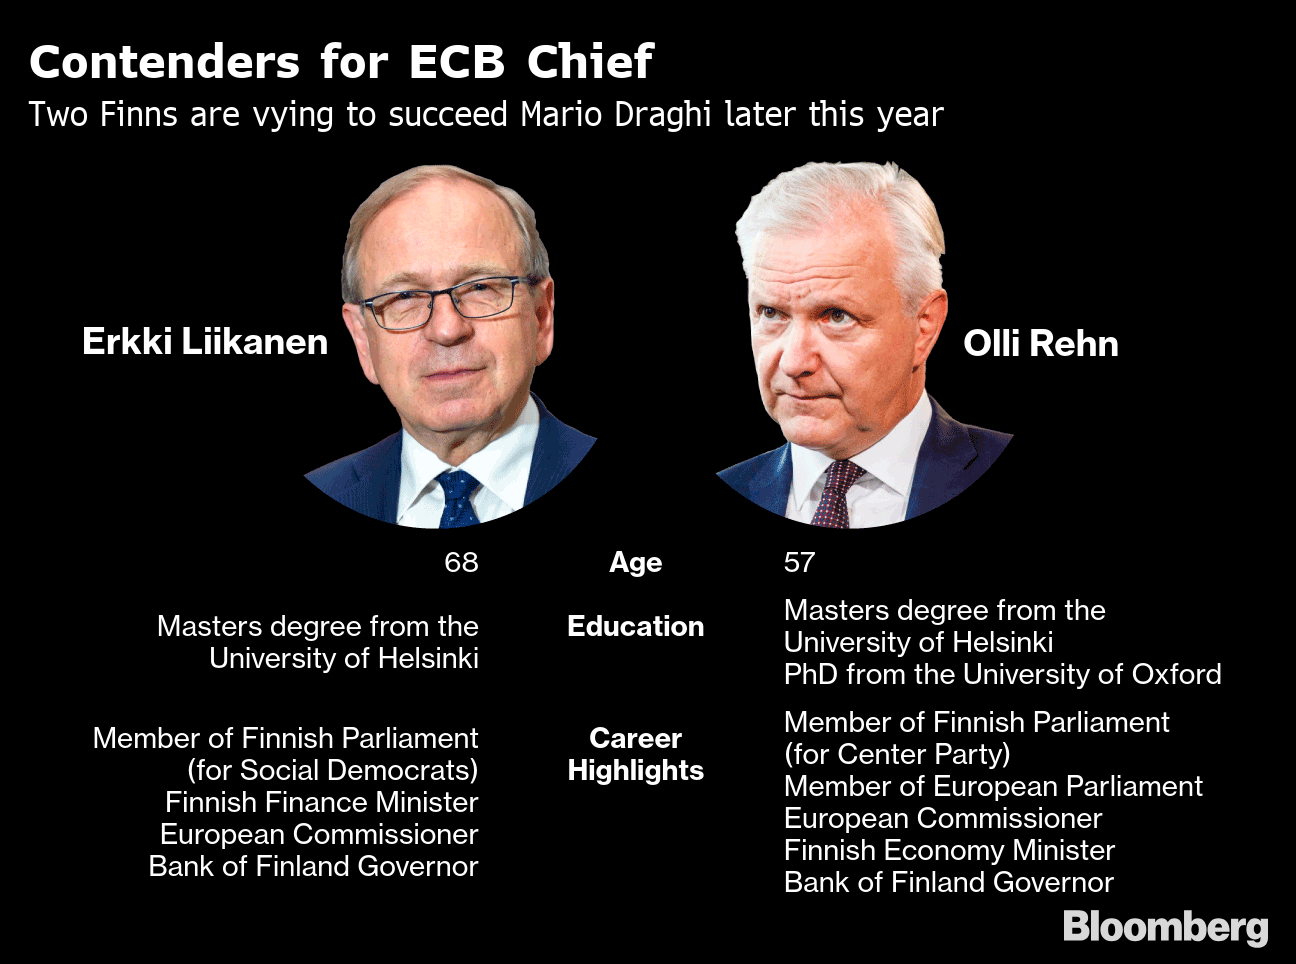 ECB Compromise Candidate From Finland Still Unresolved With